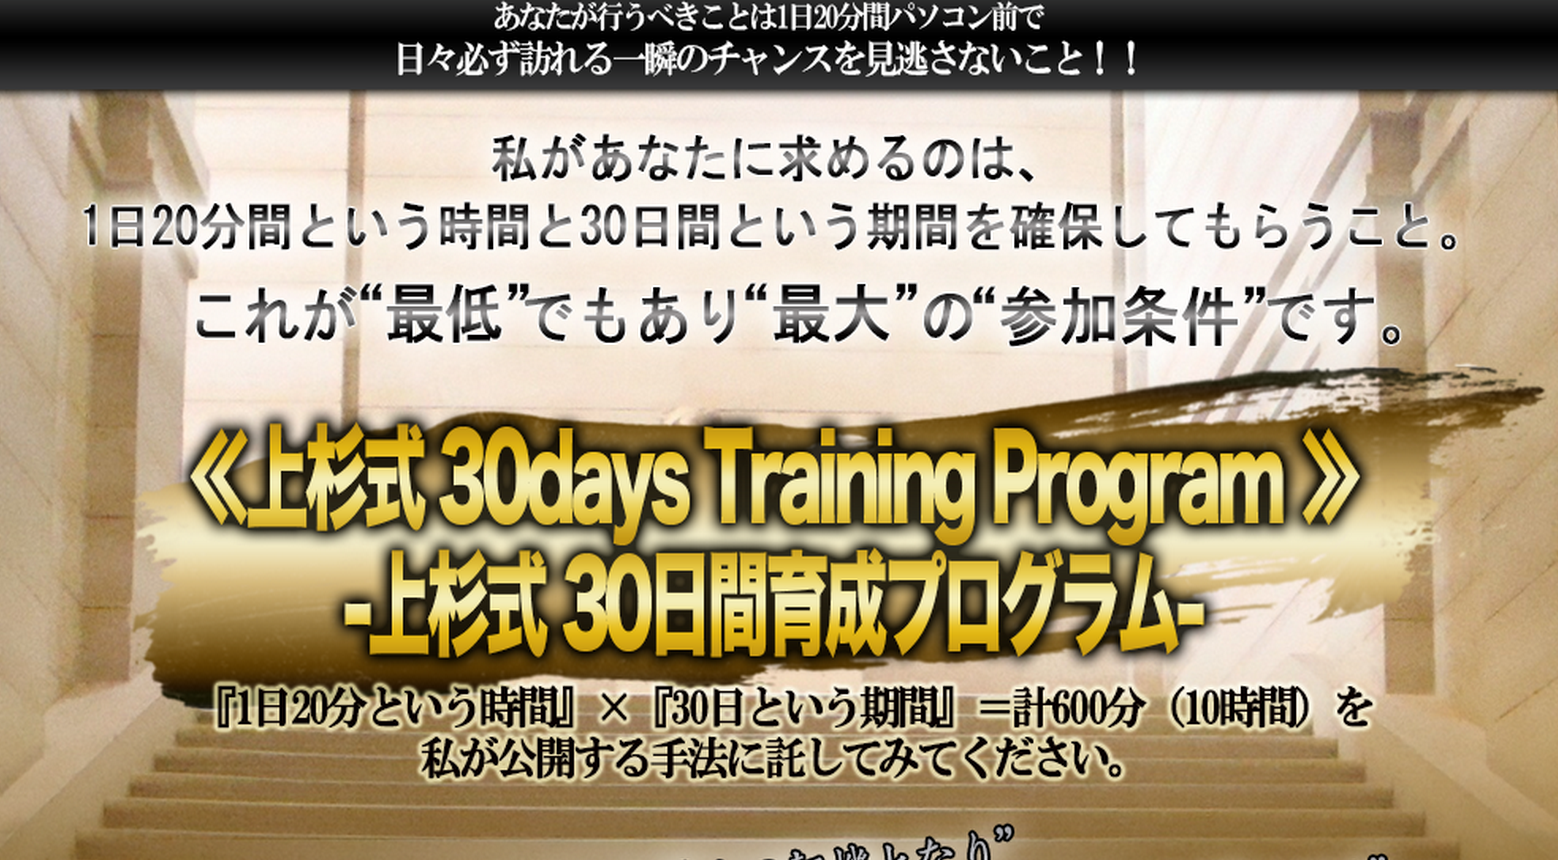 上杉式 30days Training Program